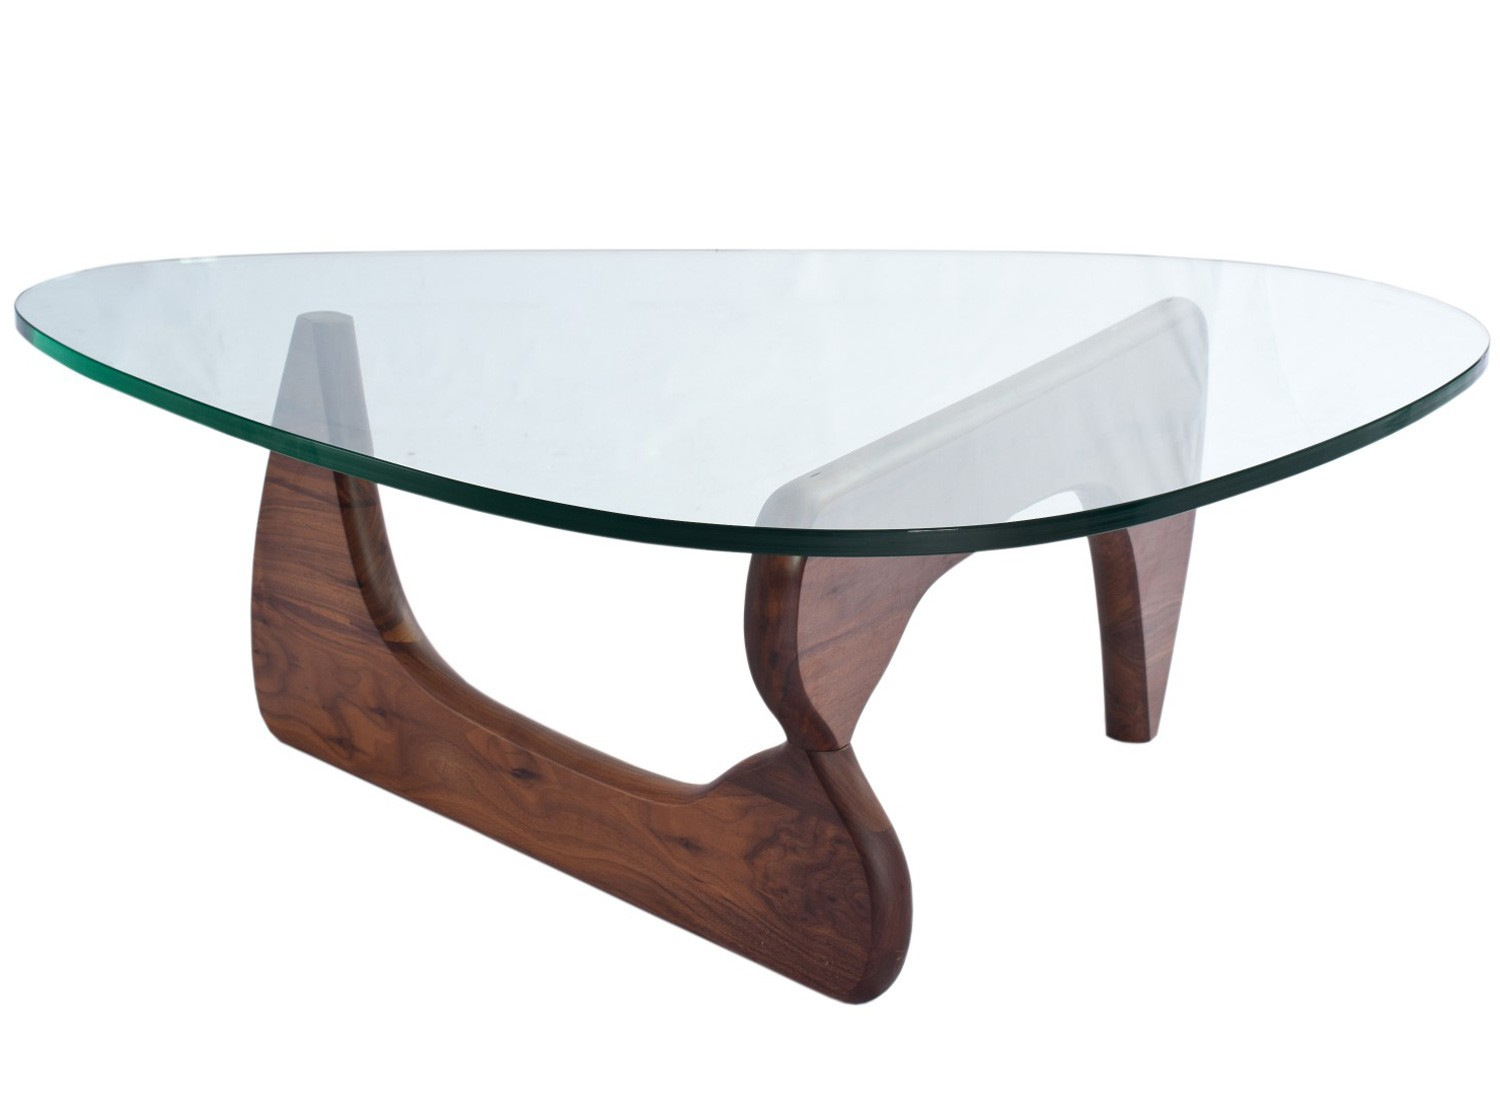 noguchi-glass-coffee-table-oguchi-Coffee-Table-19mm-Glass-Platinum-Replica-wooden-legs-four (Image 5 of 10)